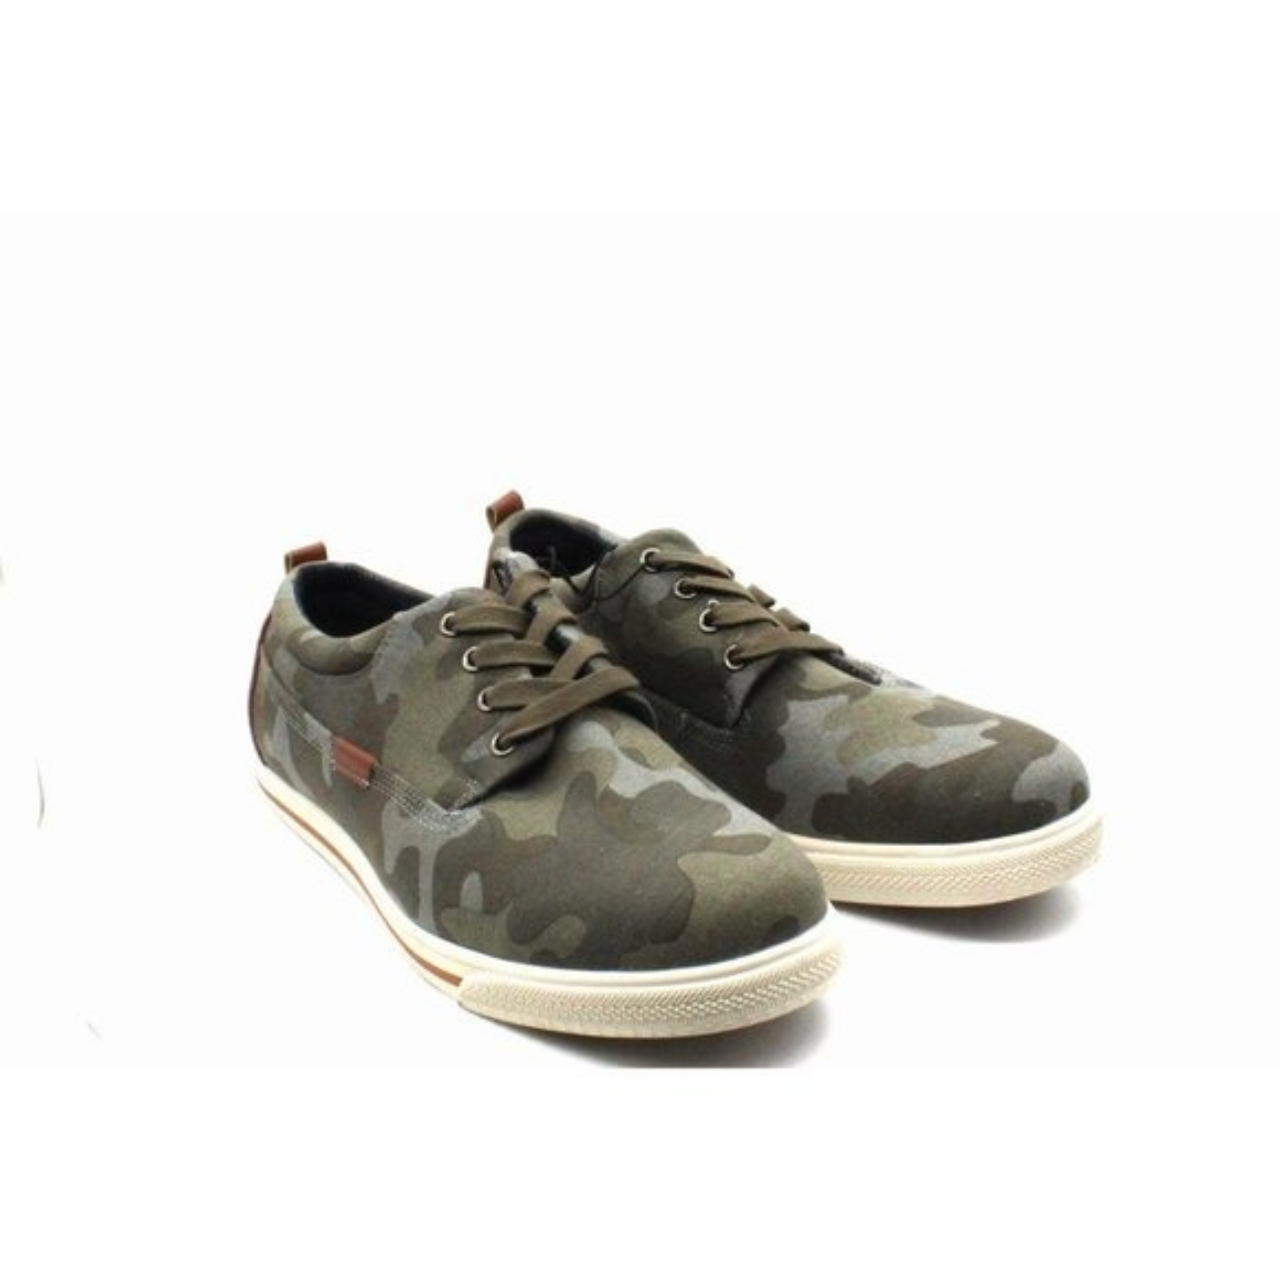 Product Image 1 - A fun camo sneaker by